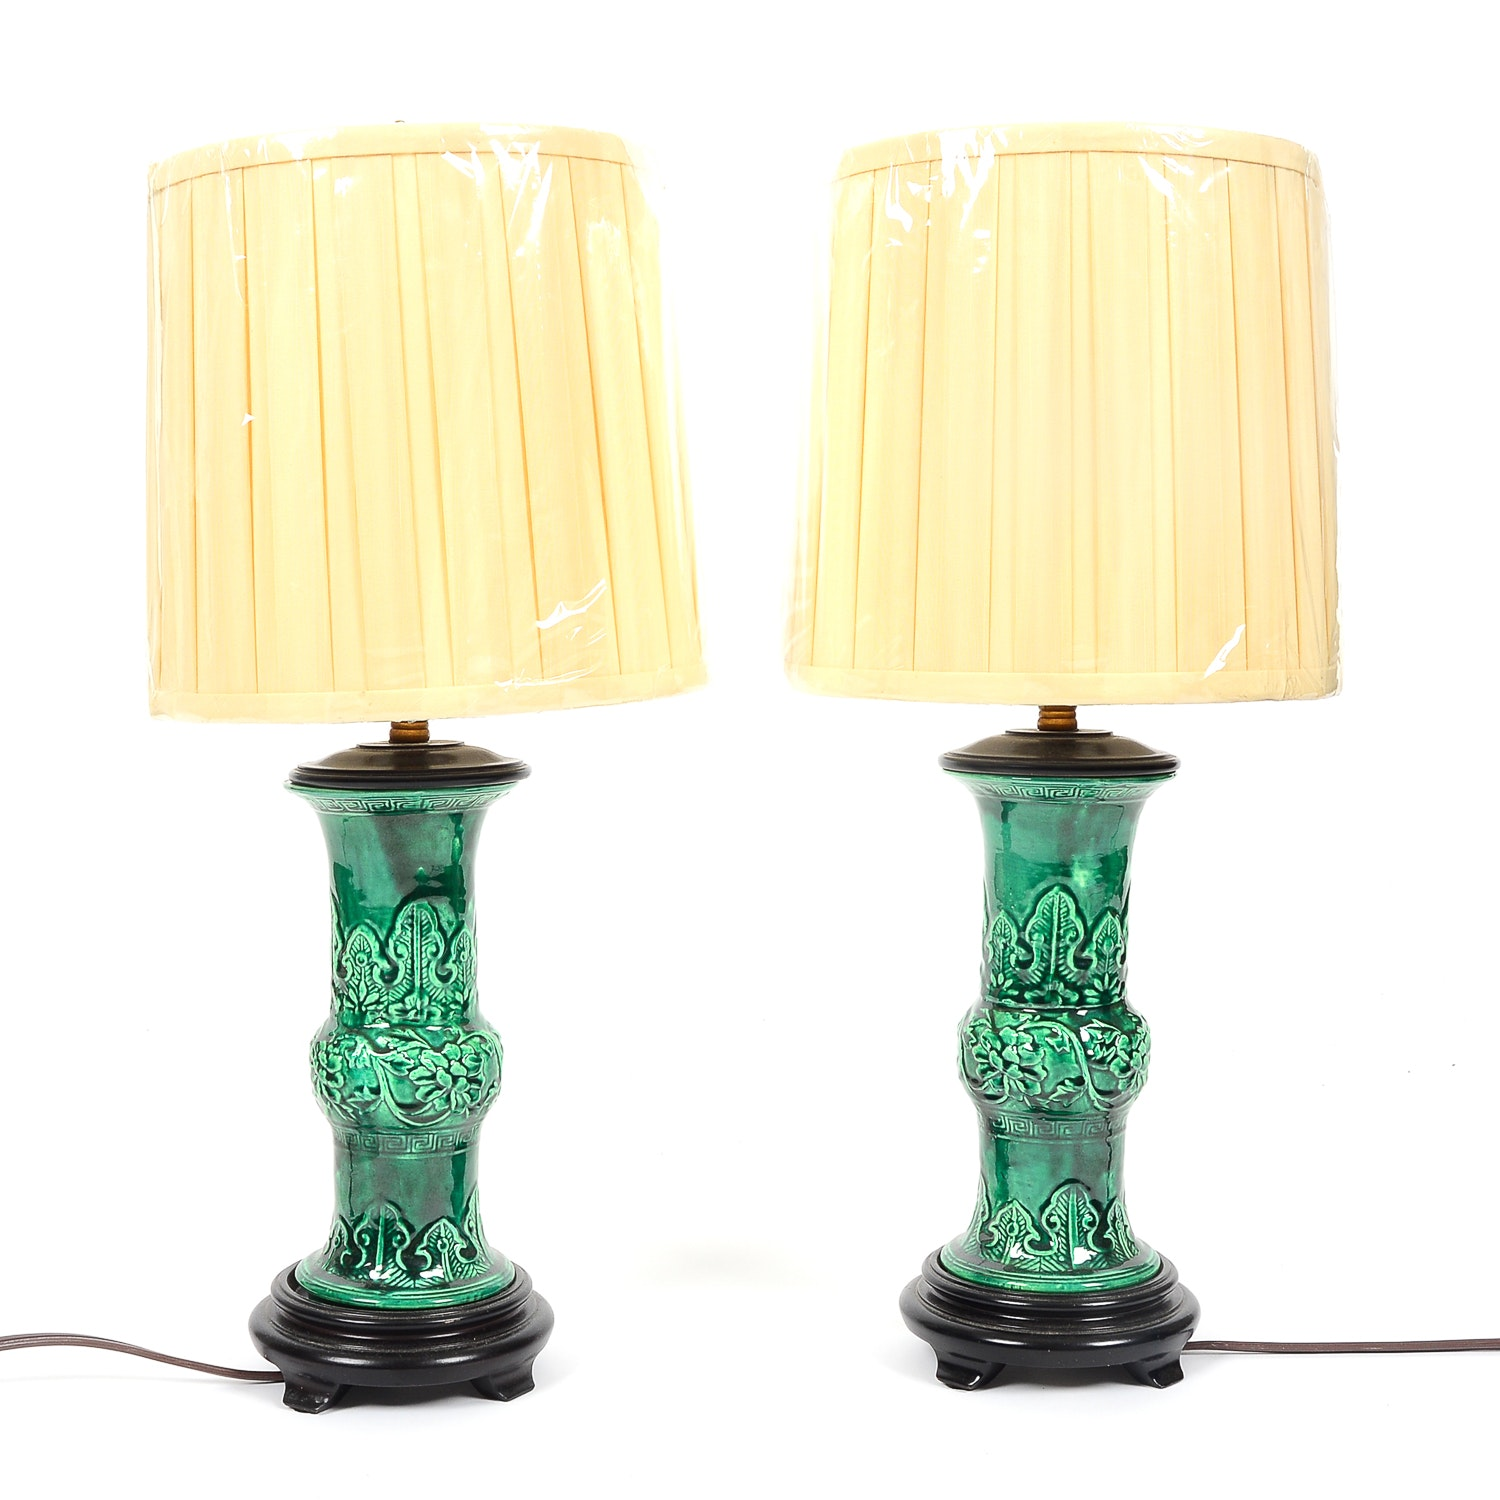 Pair of Port 68 Accent Lamps